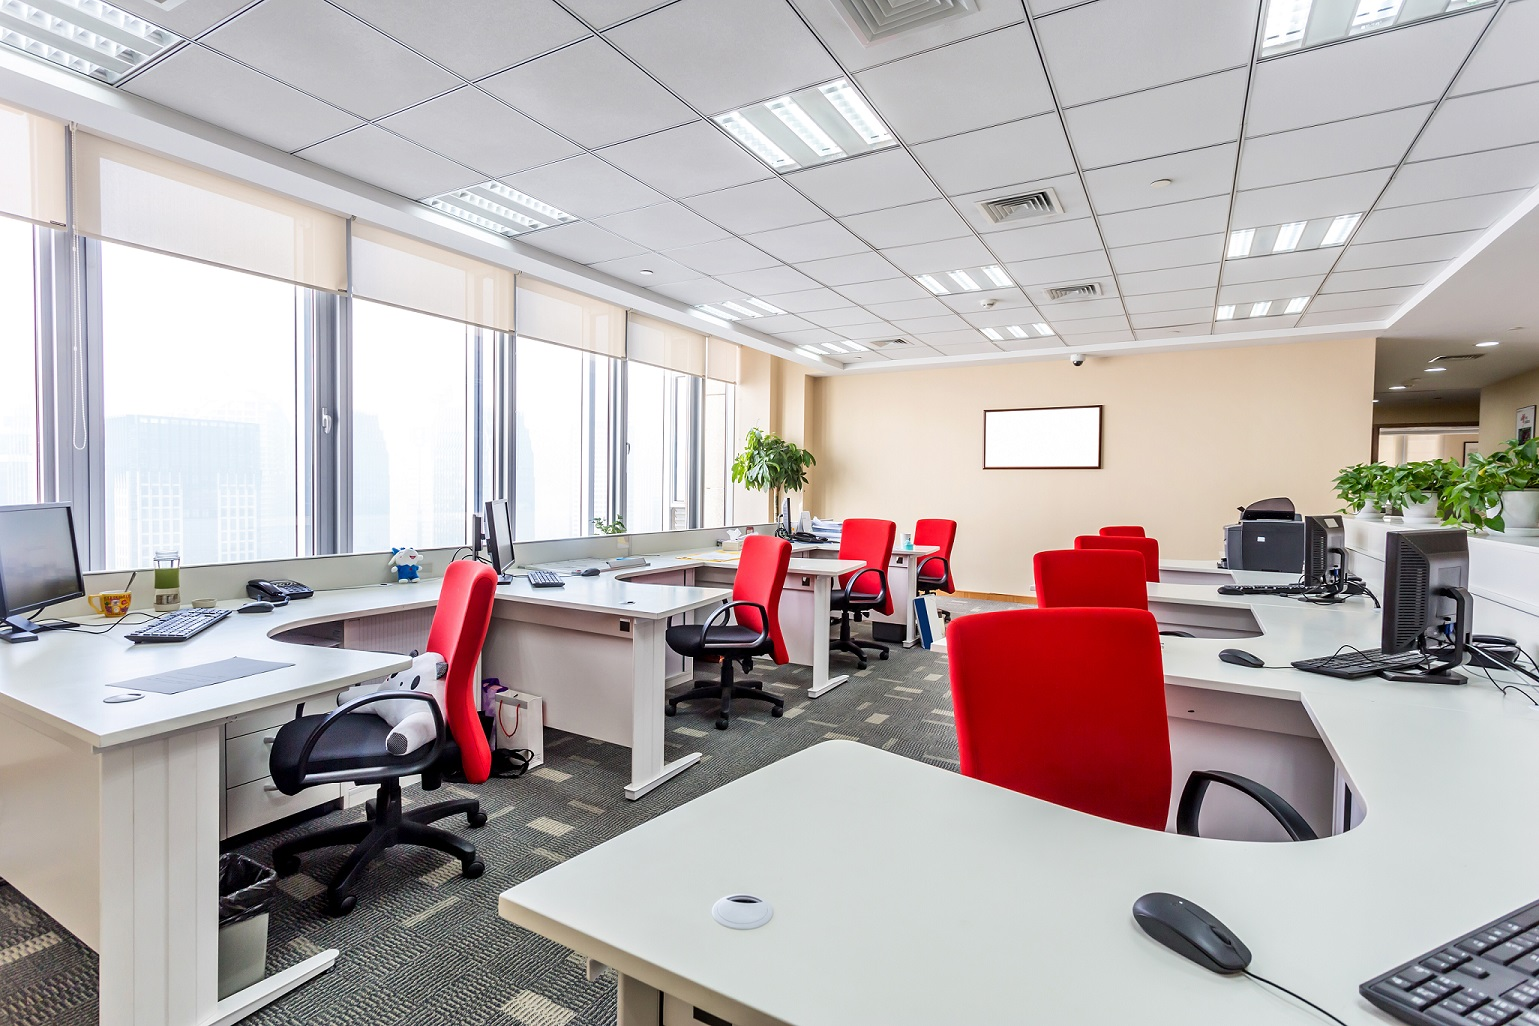 Our Business - SCI Janitorial has been diligently providing superior commercial cleaning services to Nashville and Middle Tennessee for nearly the past two decades. It is a proudly American owned and operated company.